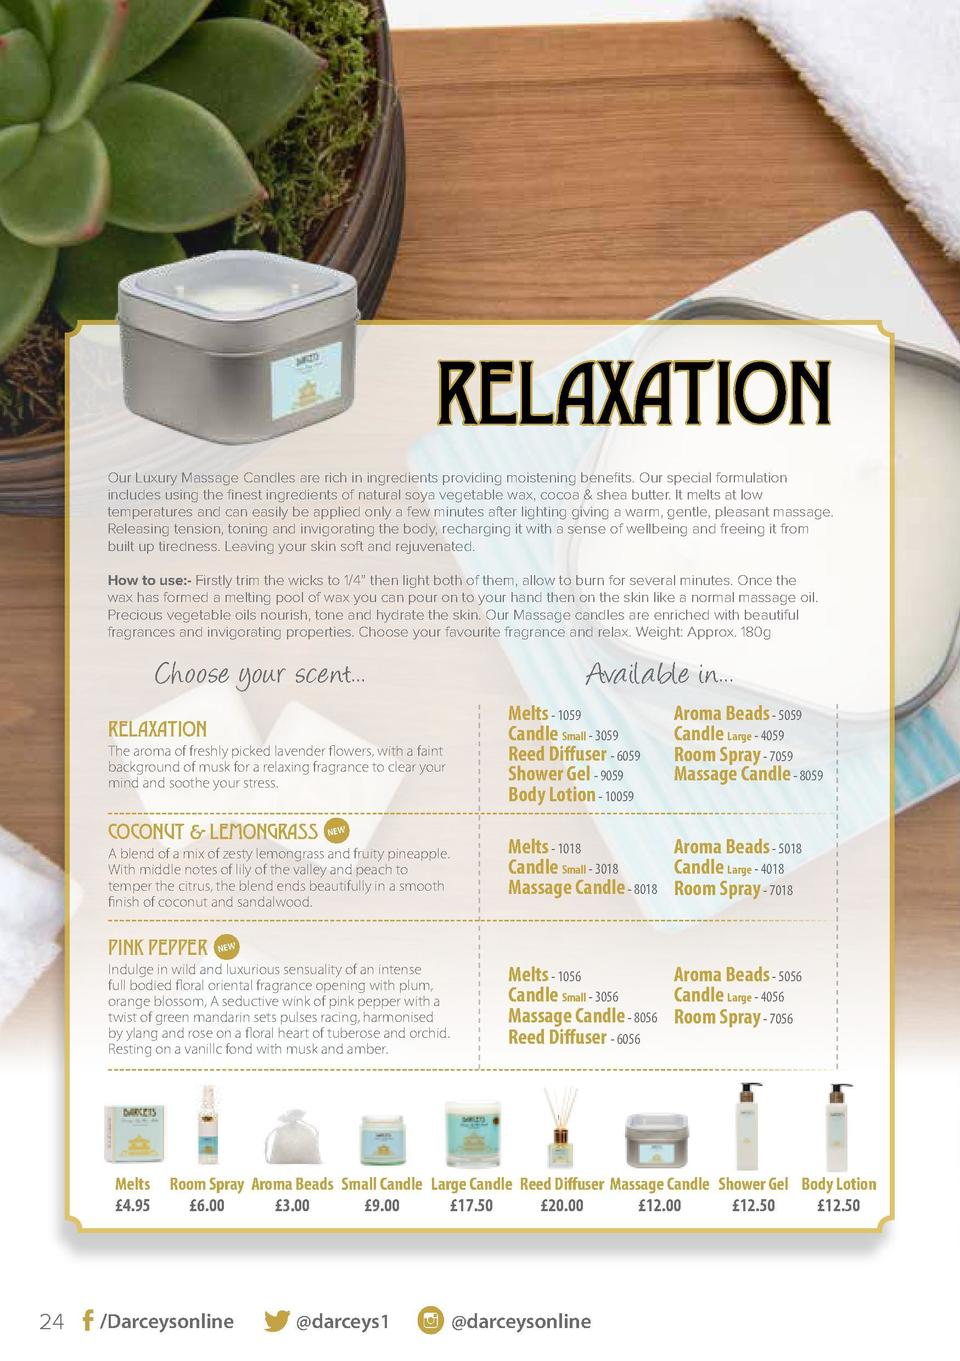 RELAXATION Our Luxury Massage Candles are rich in ingredients providing moistening benefits. Our special formulation inclu...